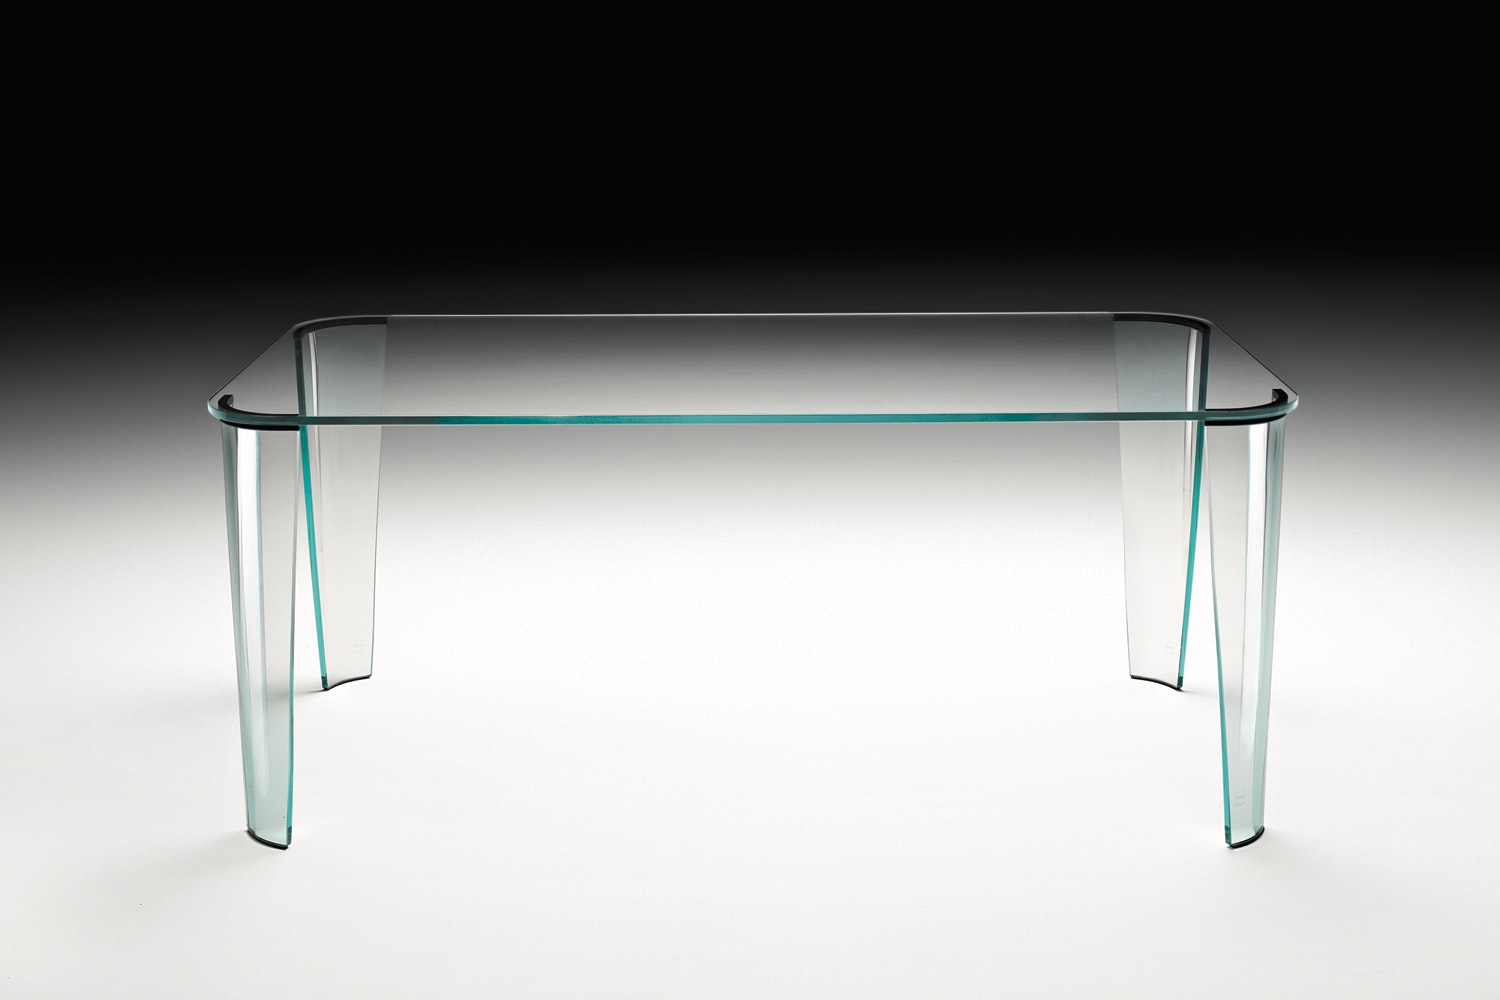 Montefeltro Table by Enzo Mari for Fiam Italia